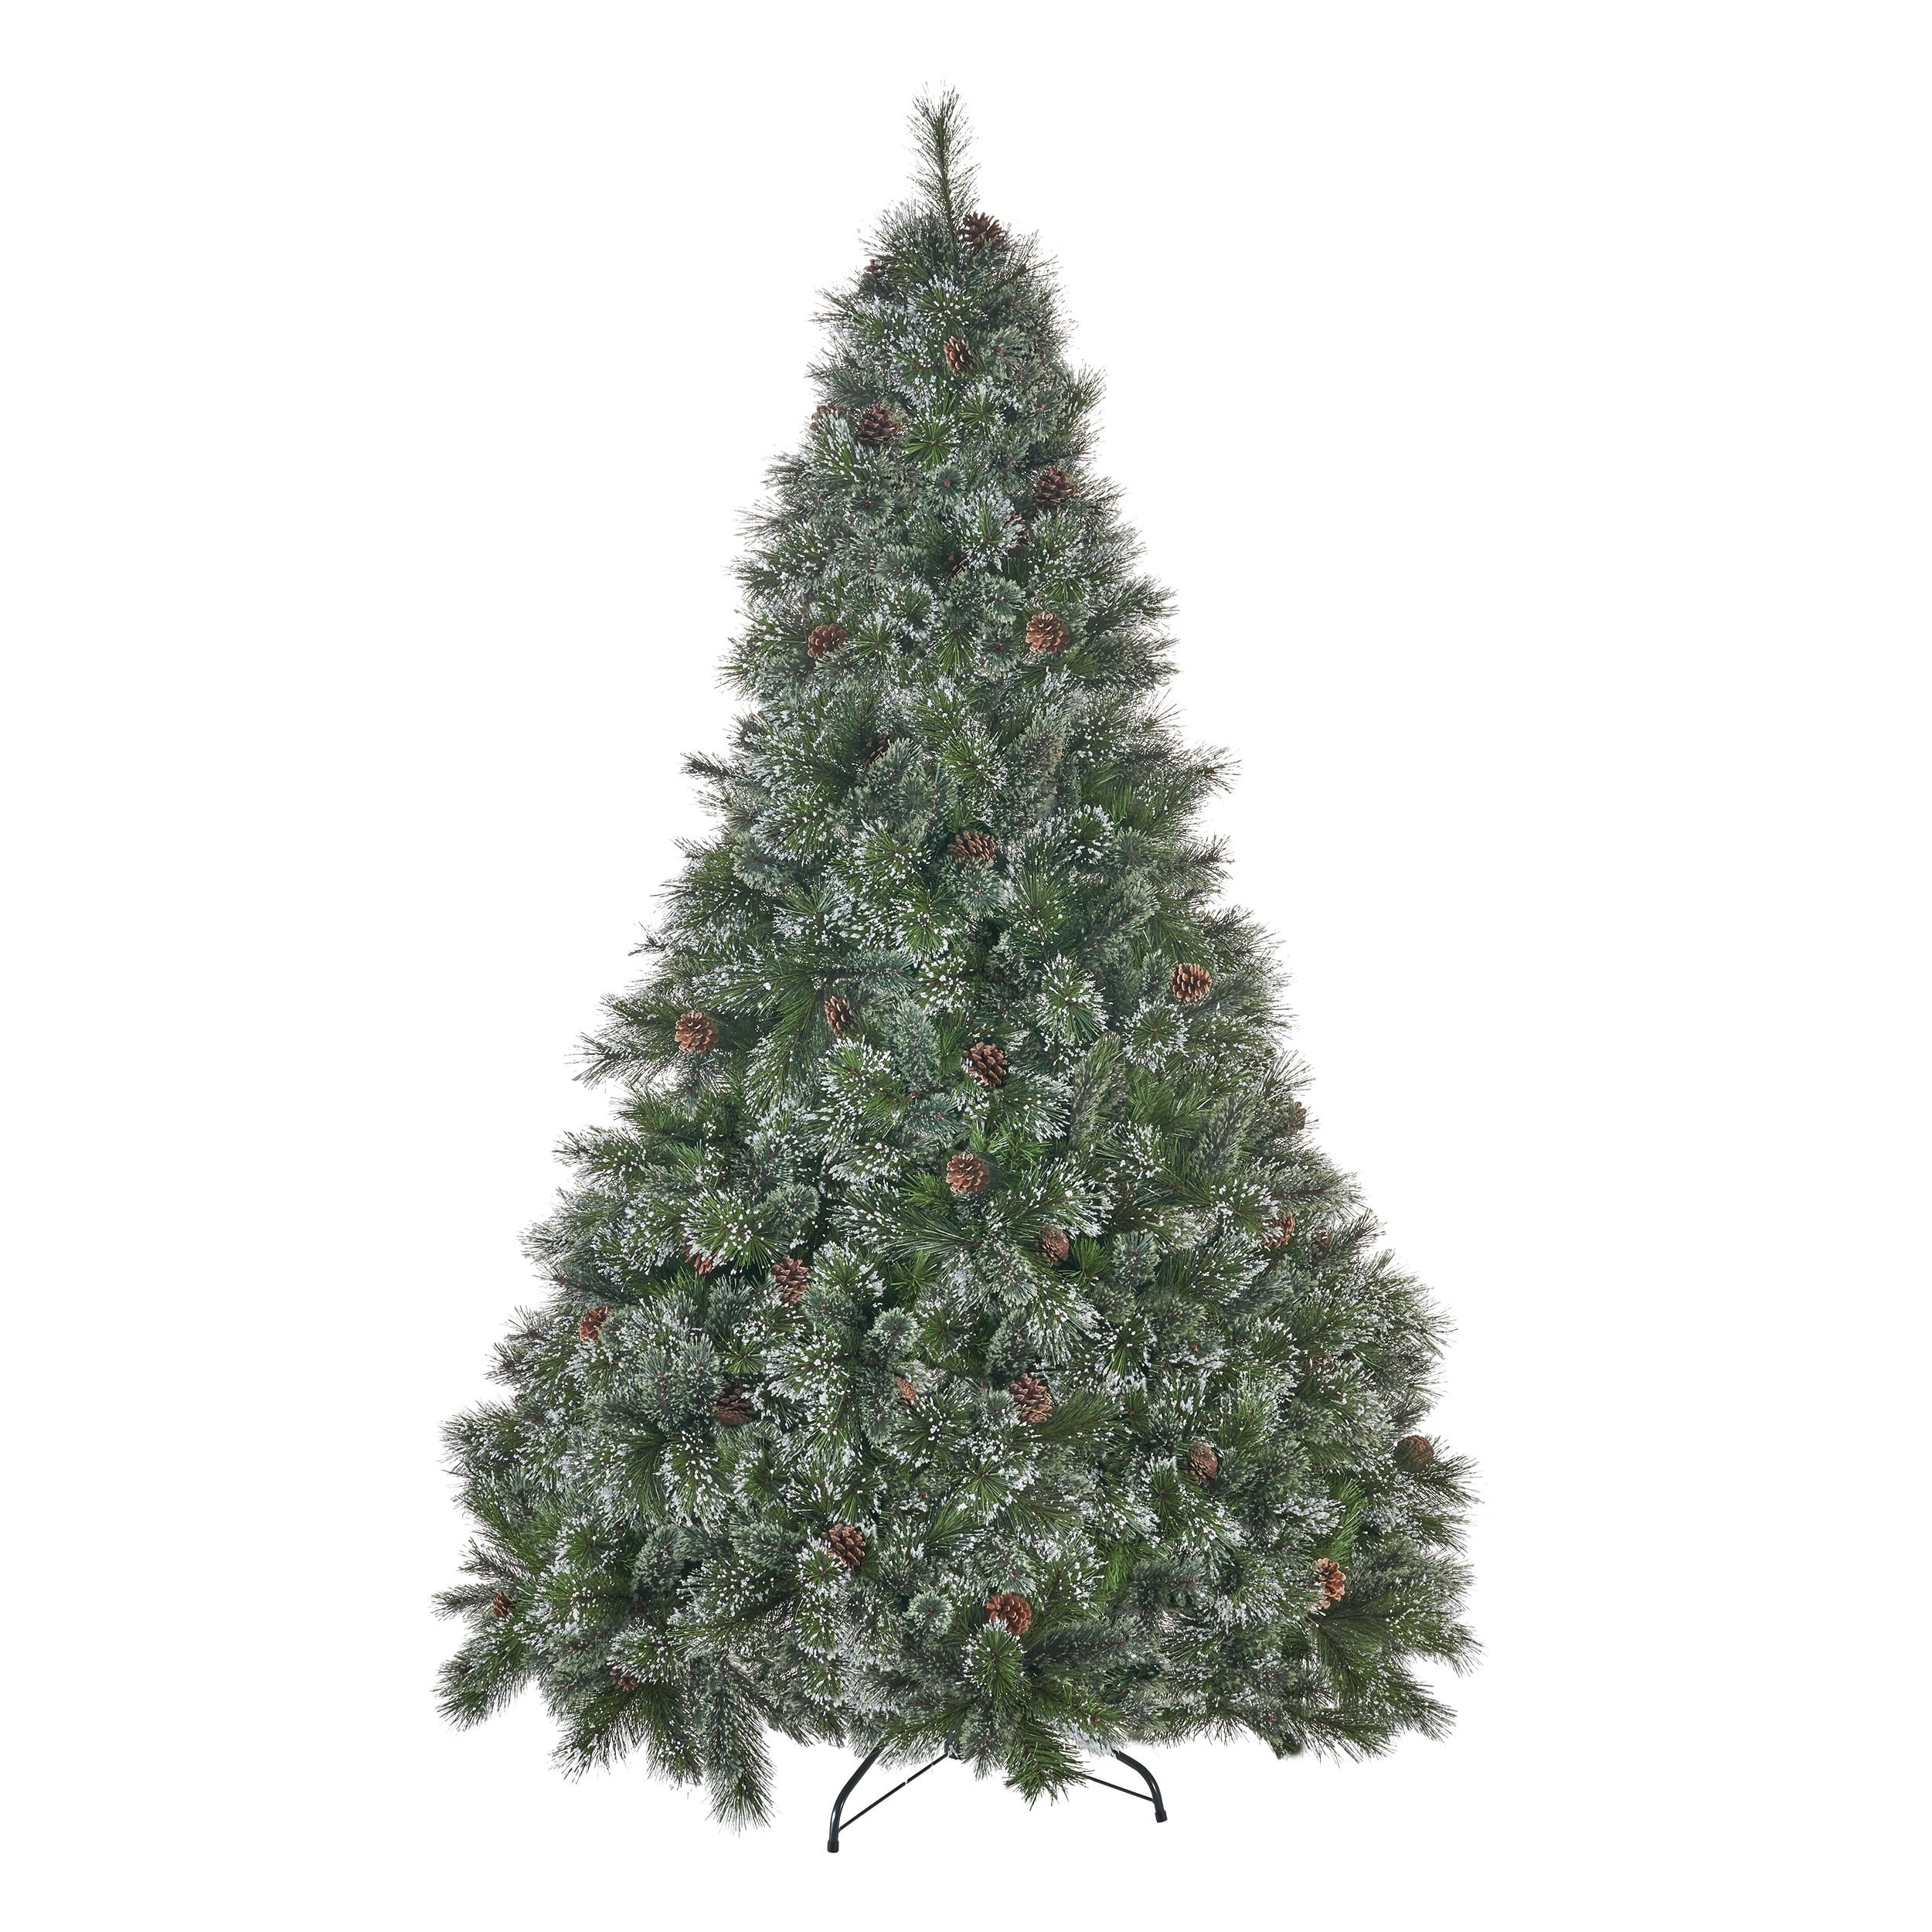 Artificial Christmas Tree Branches.9 Ft Cashmere And Spruce Pre Lit Or Unlit Artificial Christmas Tree With Snowy Branches Pinecones By Christopher Knight Home